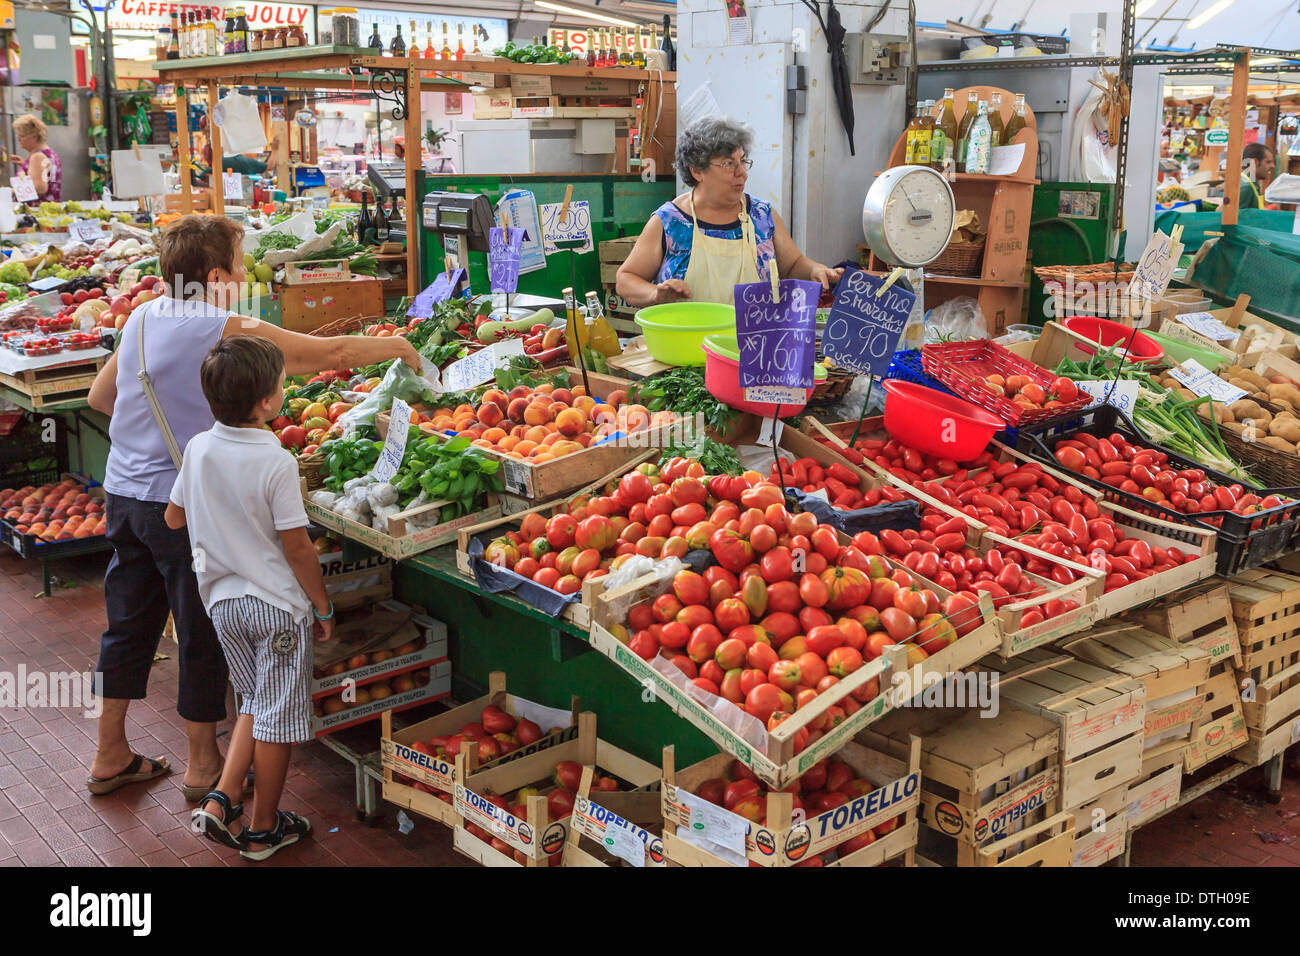 Market stall with fruit and vegetables in the market hall of Sanremo, Liguria, Italy - Stock Image